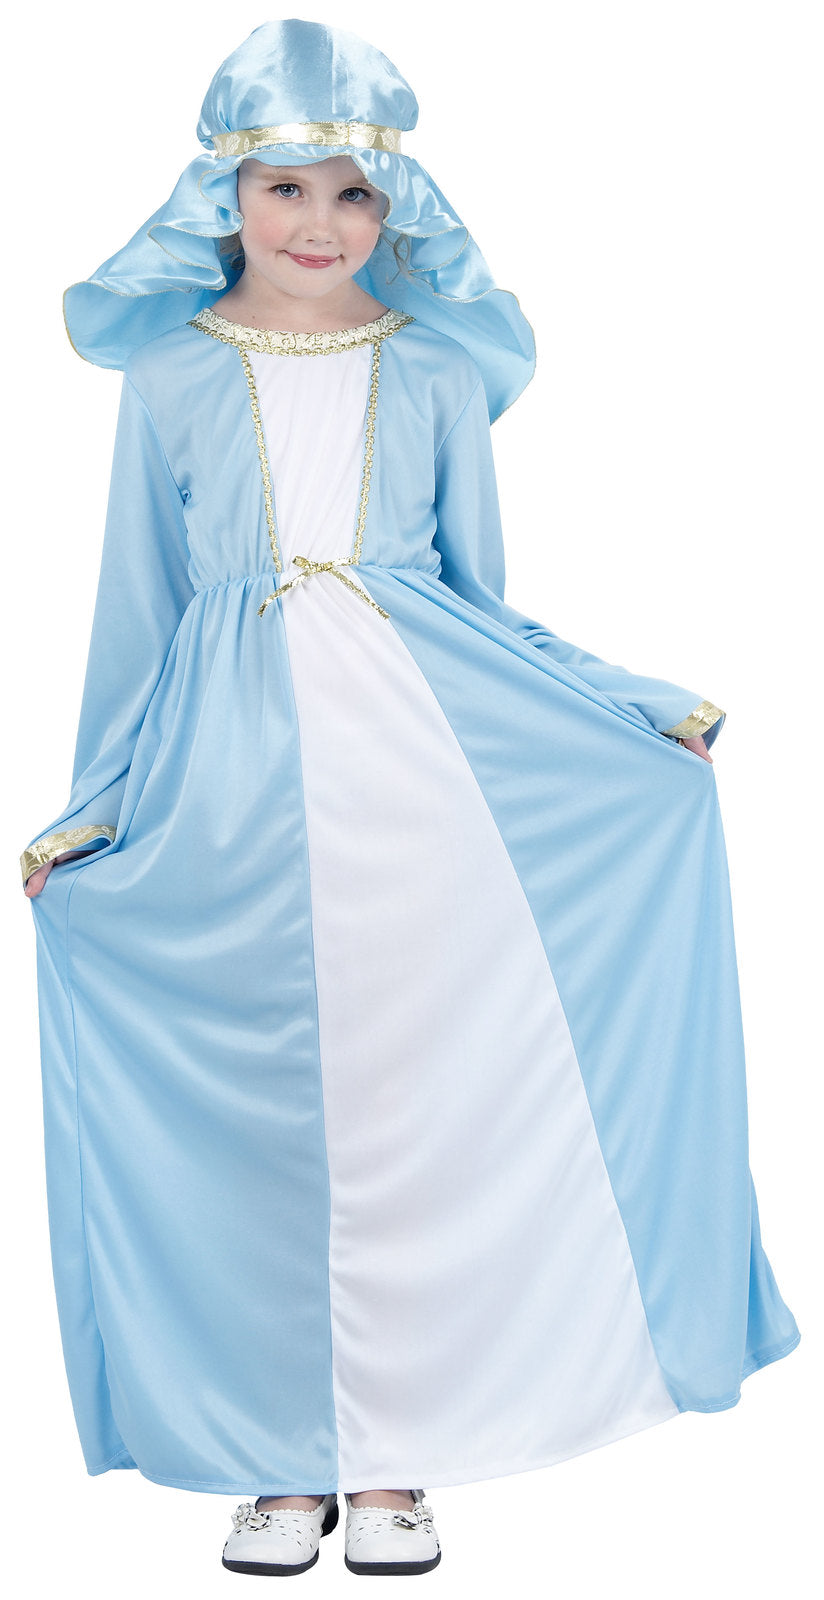 Mary Child Costume - Buy Online Only